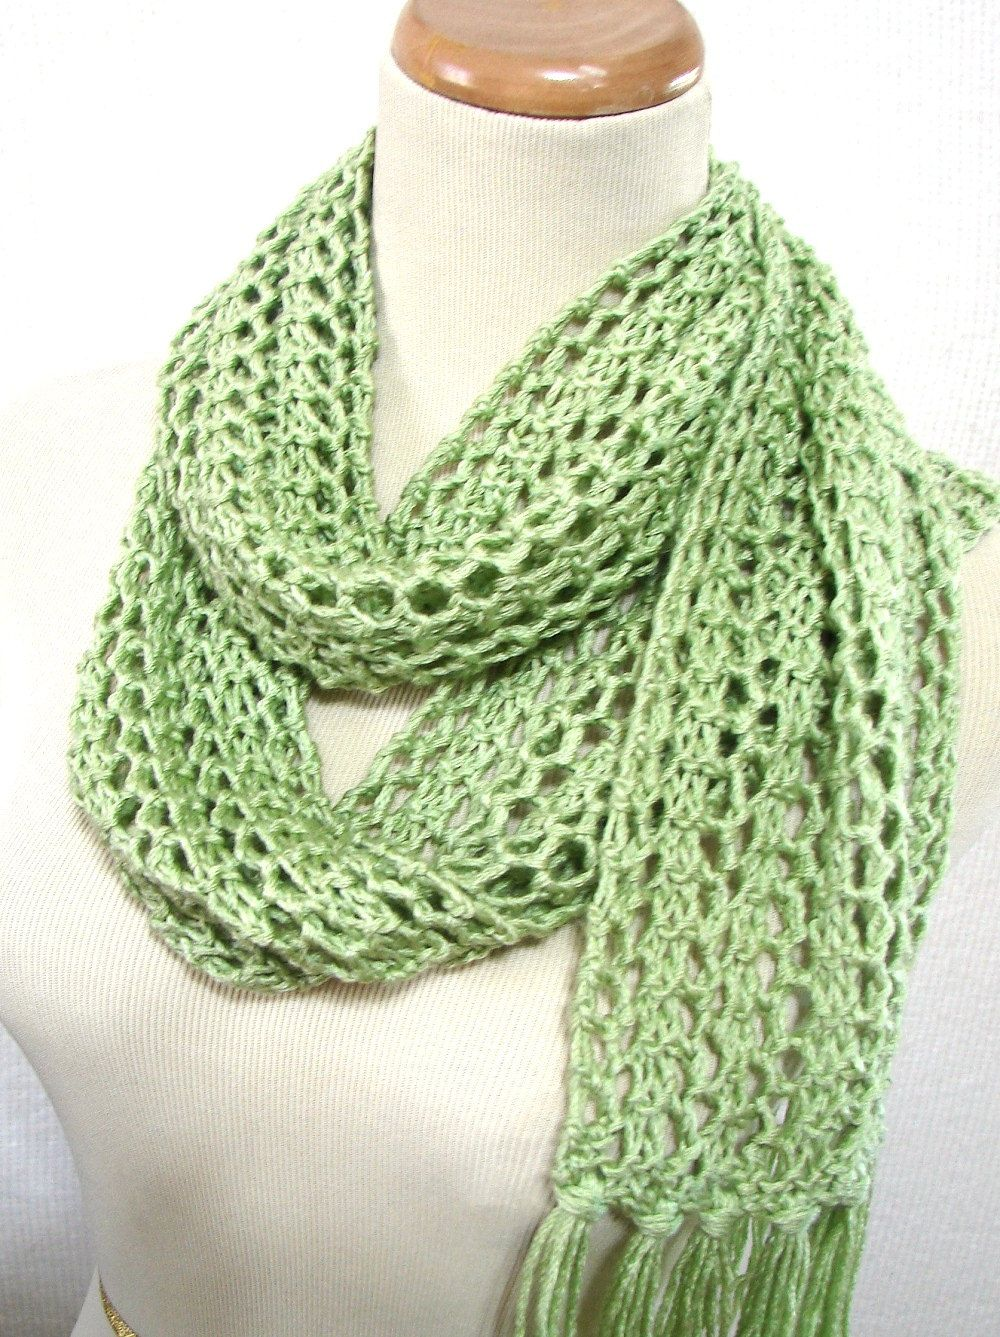 Green Scarf, Knit Scarf, Hand Knit Scarf, Lacy Scarf, Gift Idea For ...